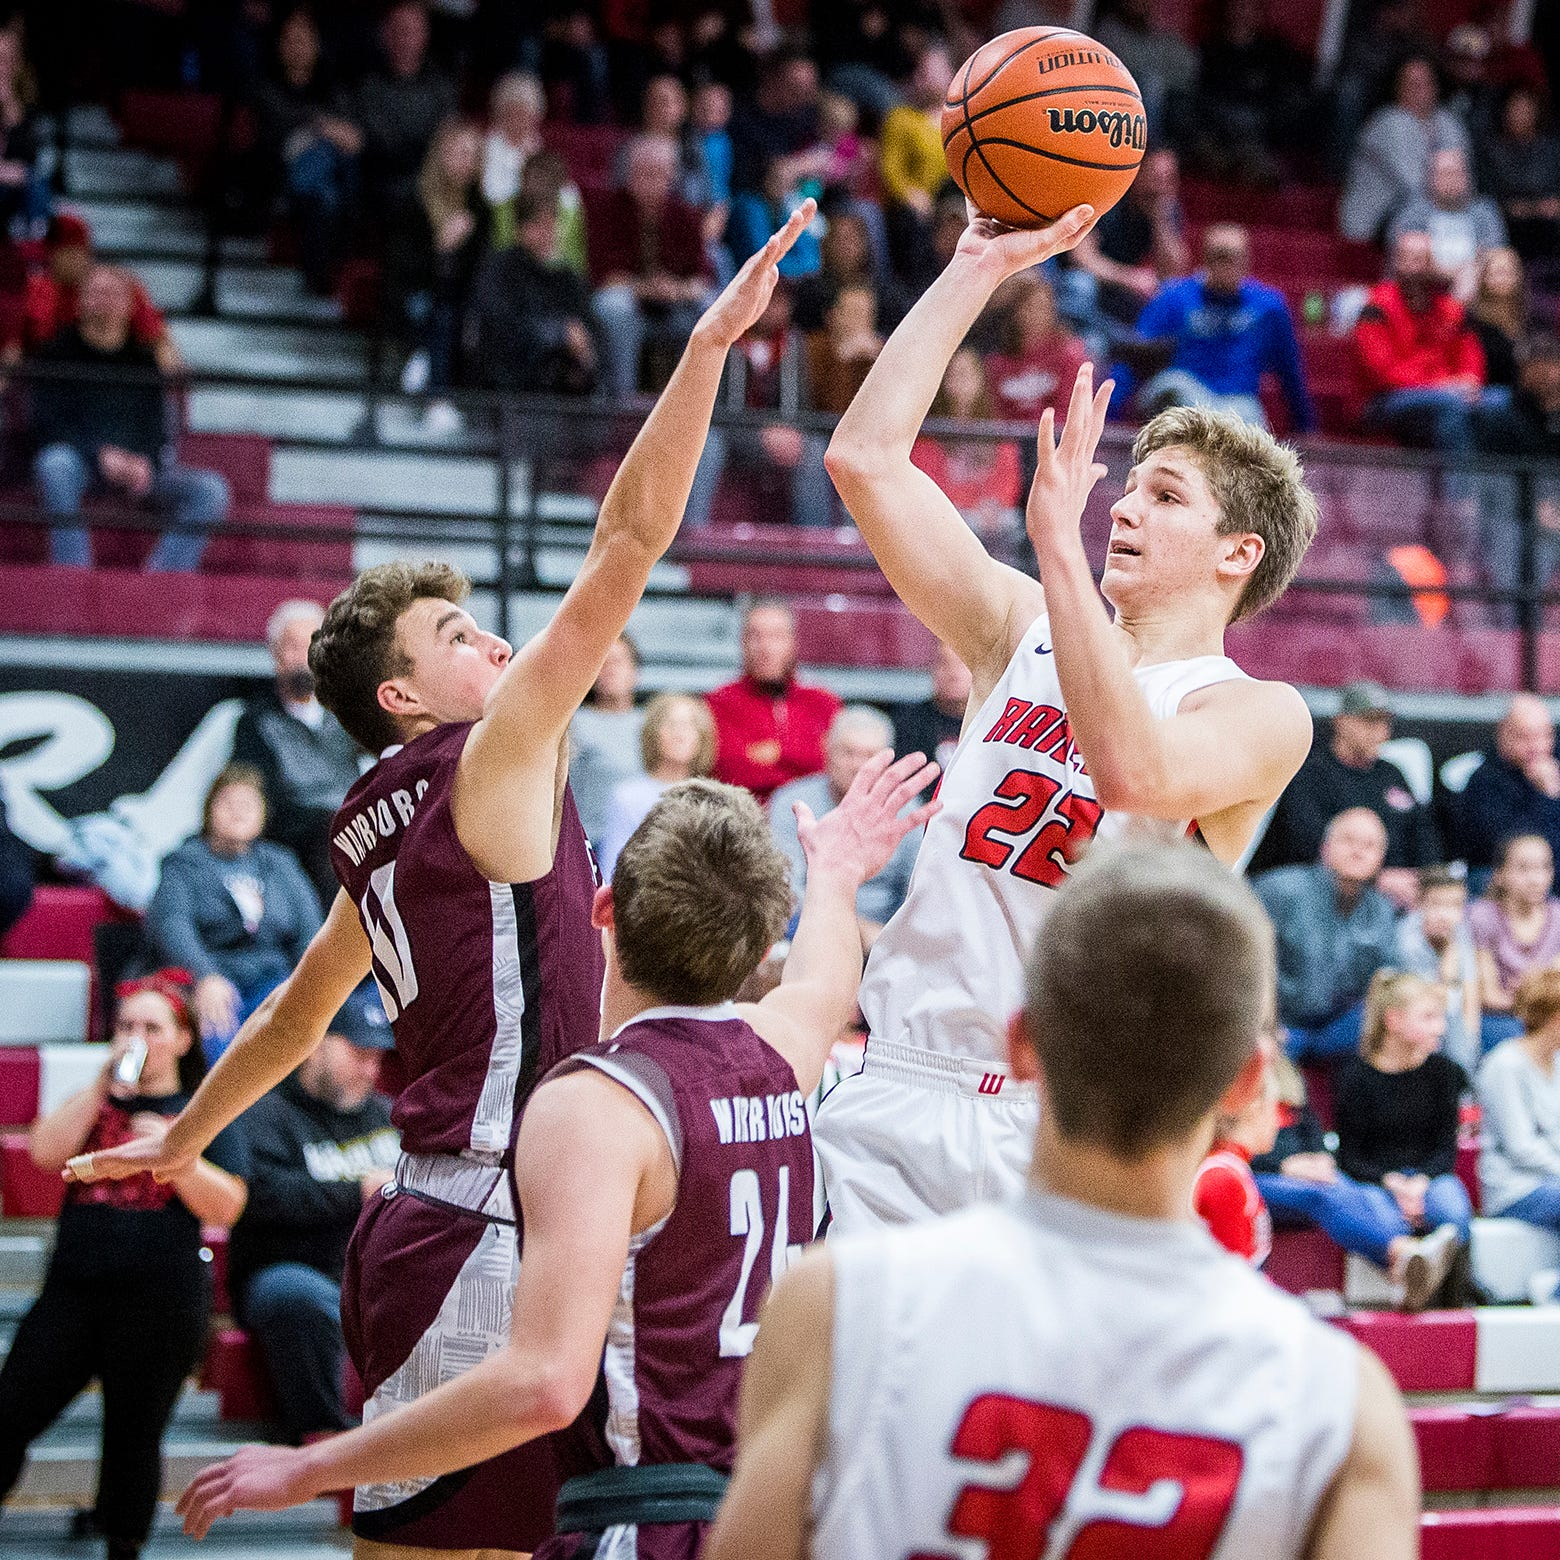 HS hoops rundown: 6 ECI teams earn wins; Luke Brown scores career high